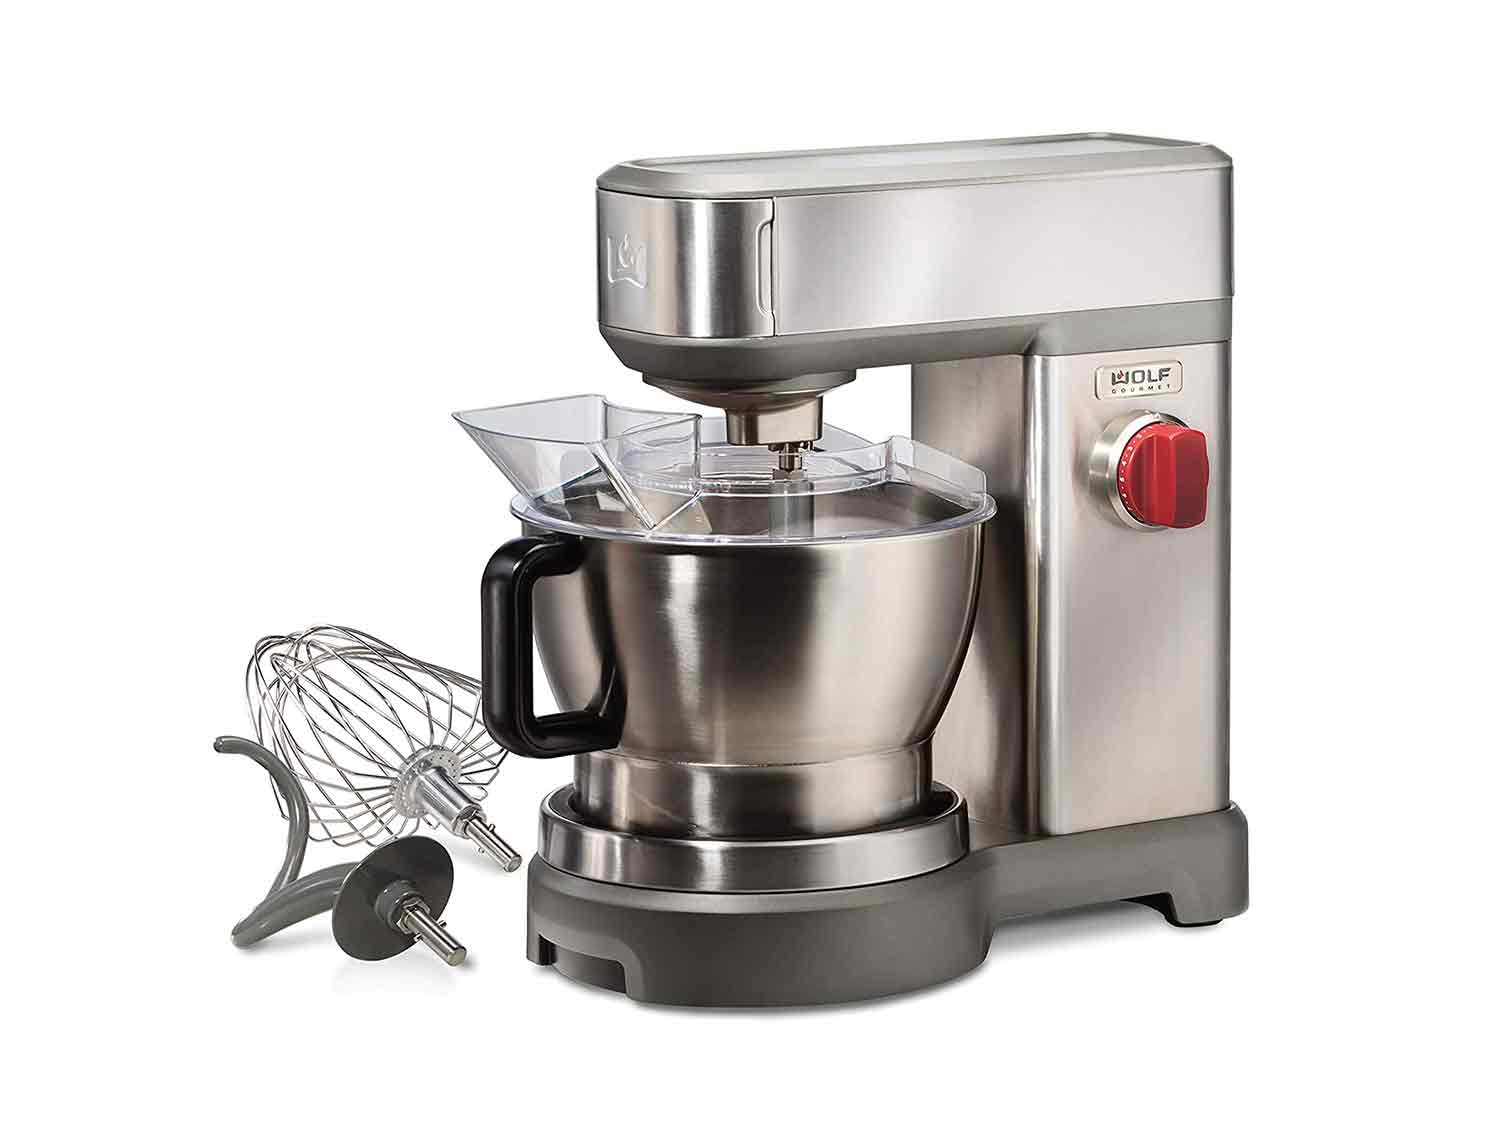 The Ferrari of Stand Mixers